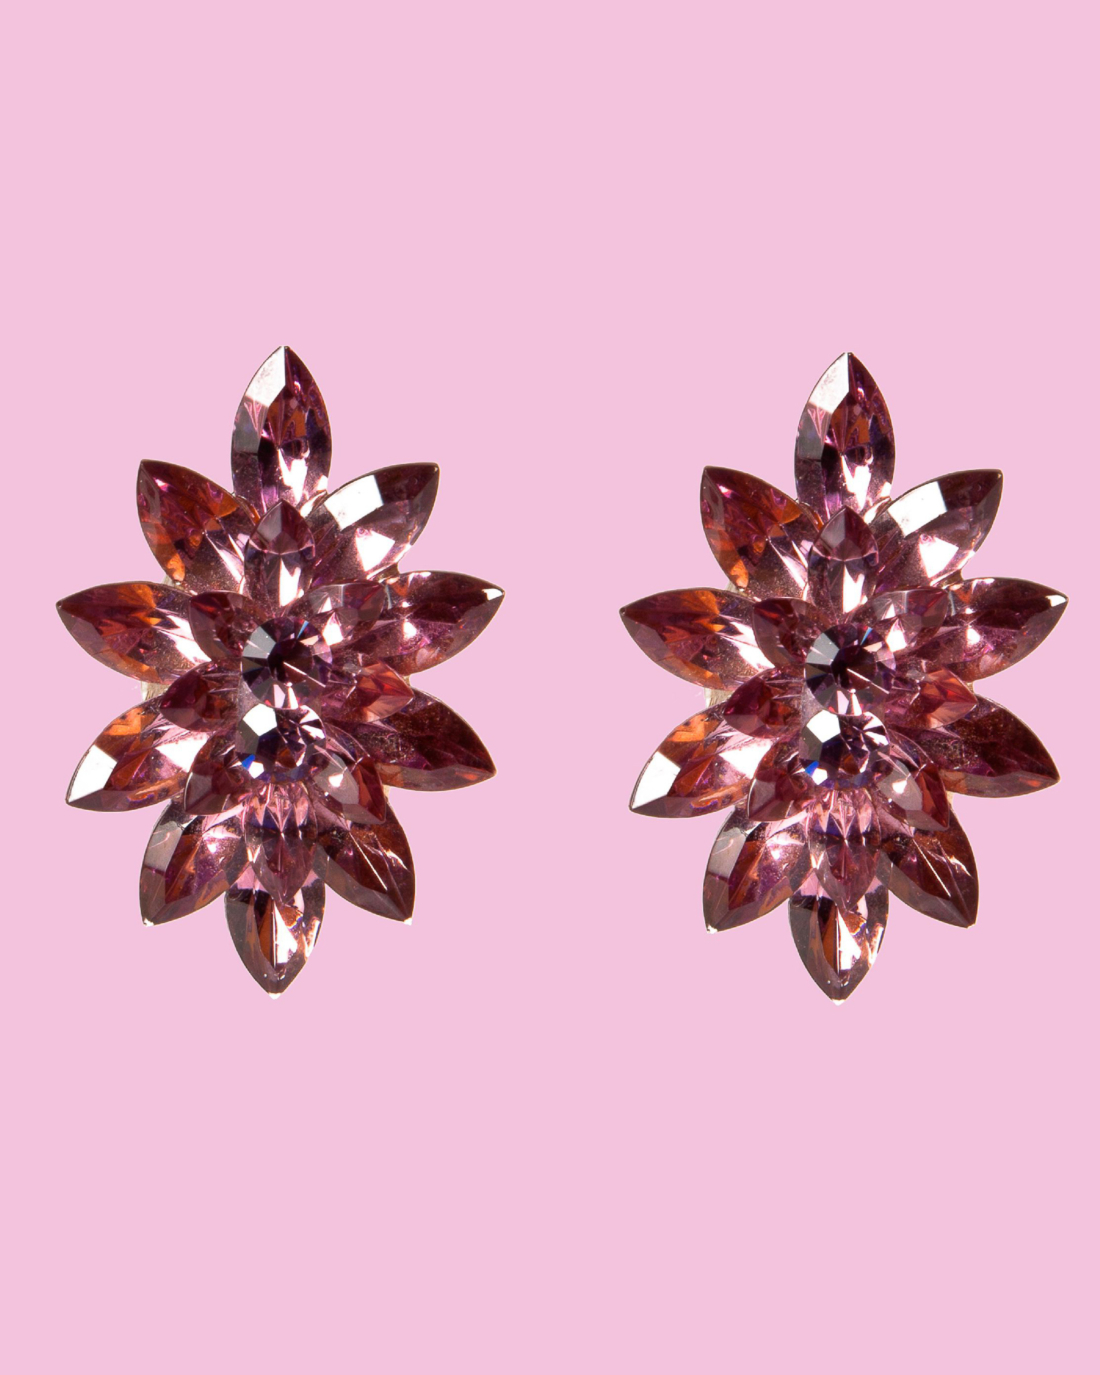 Purple Crystal Navette Pointed Star Earrings, circa 1960's